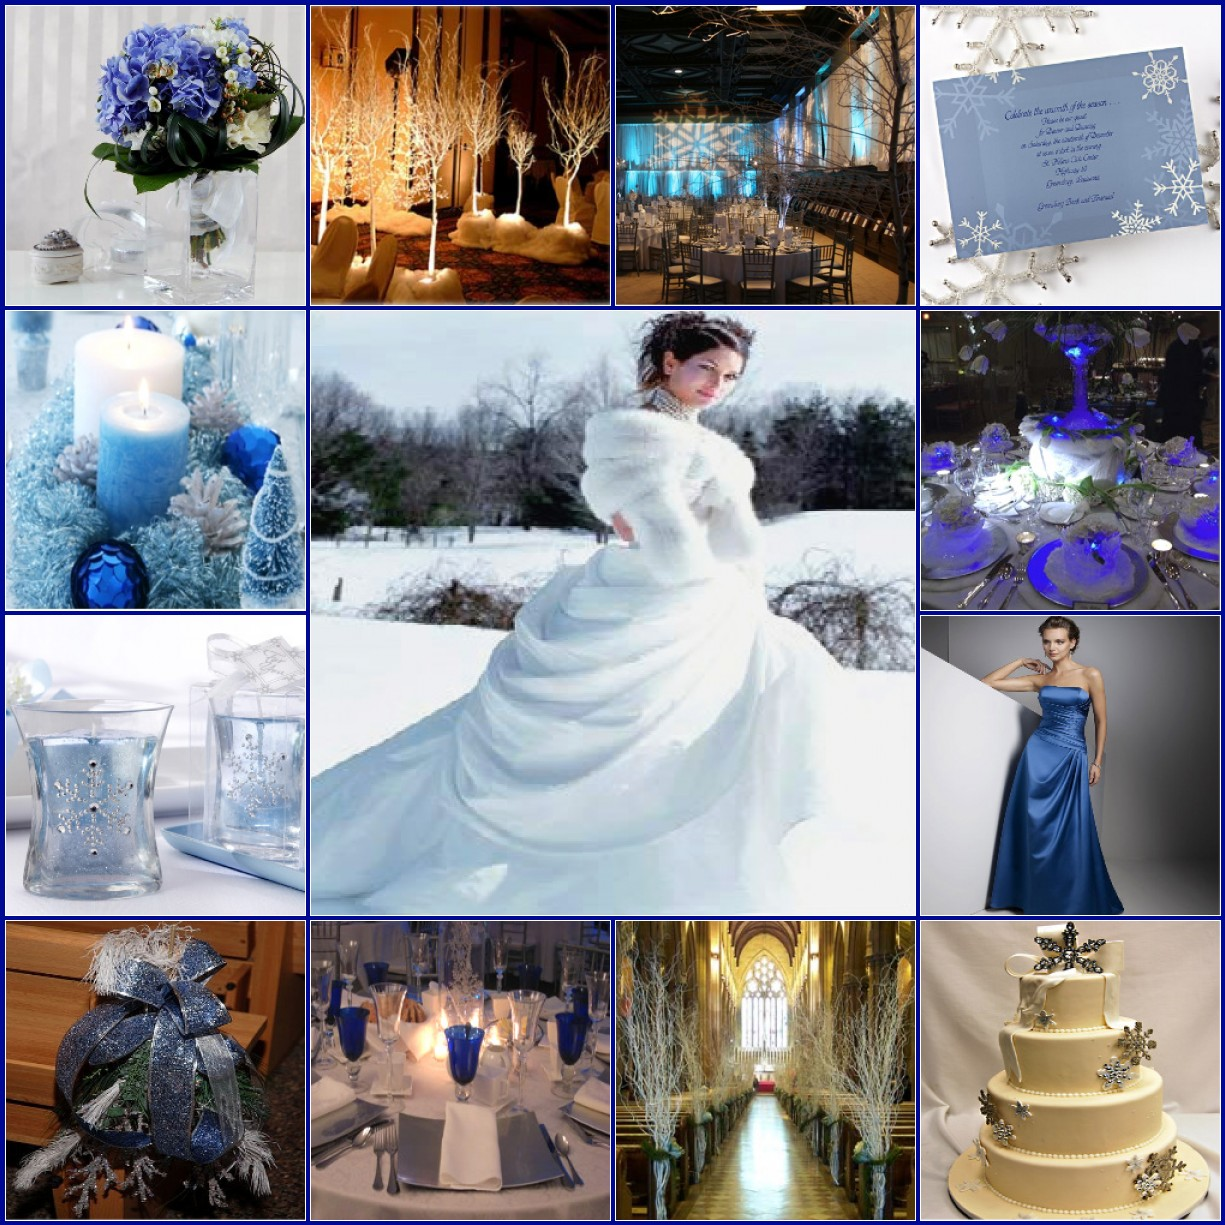 Winter wedding ideas blackhorseinnblog for Ideas for wedding pictures